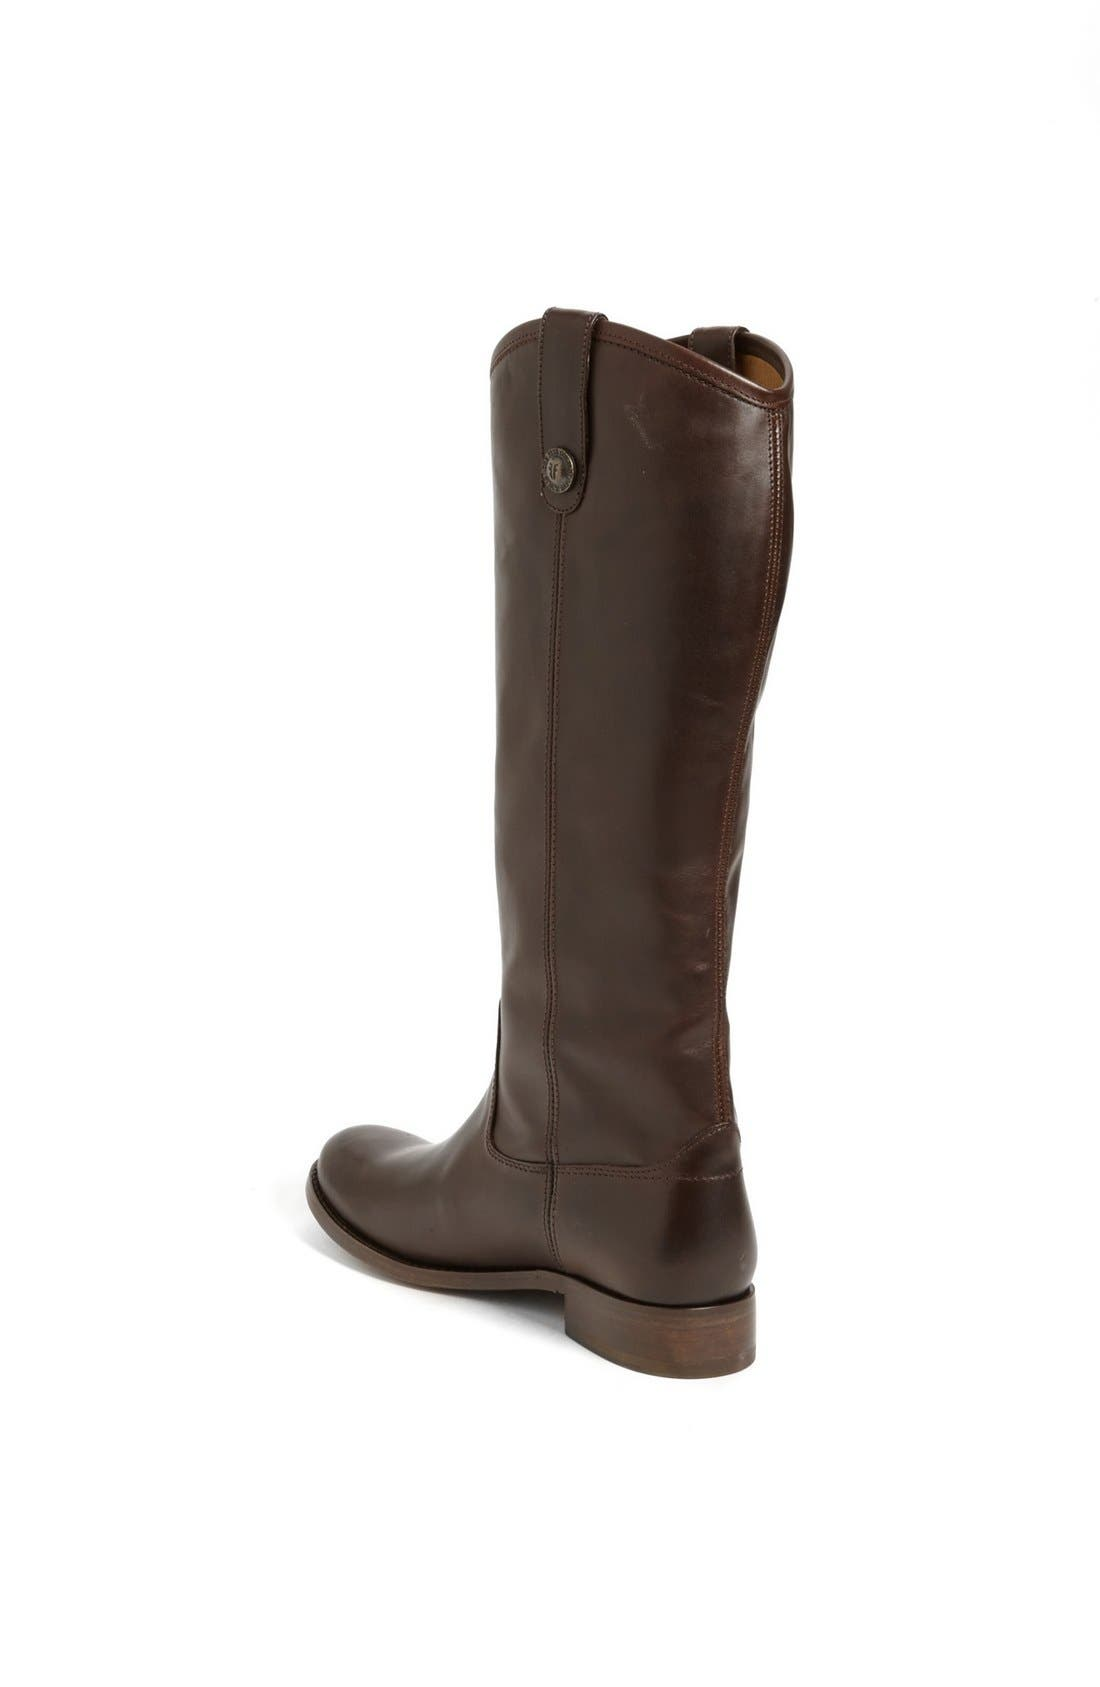 'Melissa Button' Leather Riding Boot,                             Alternate thumbnail 111, color,